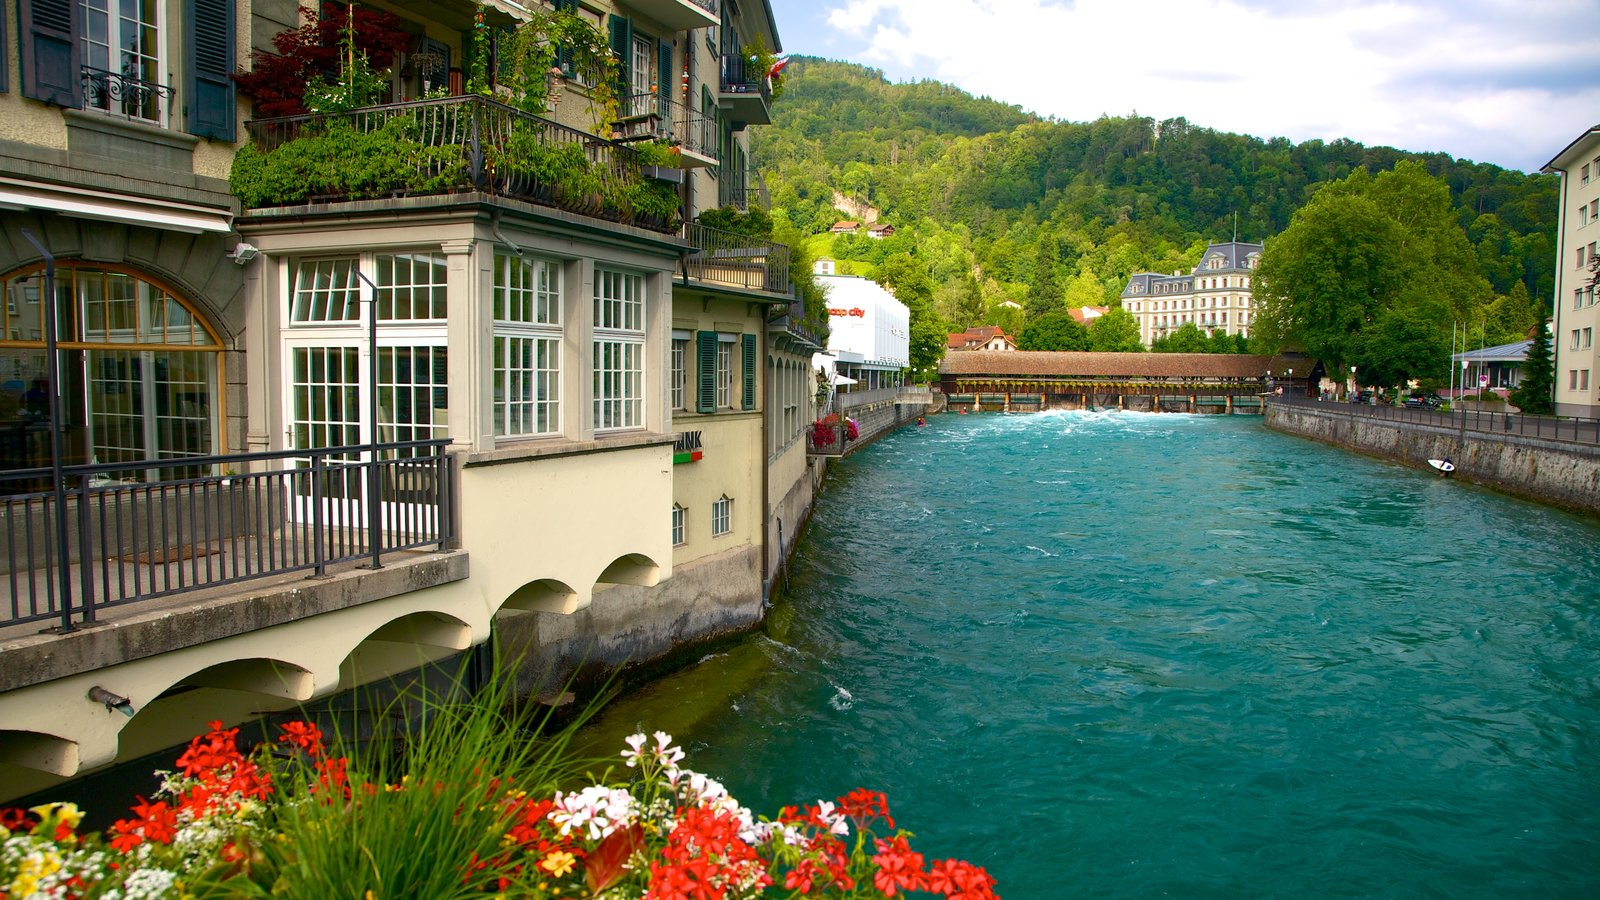 Thun which includes a house, a river or creek and flowers